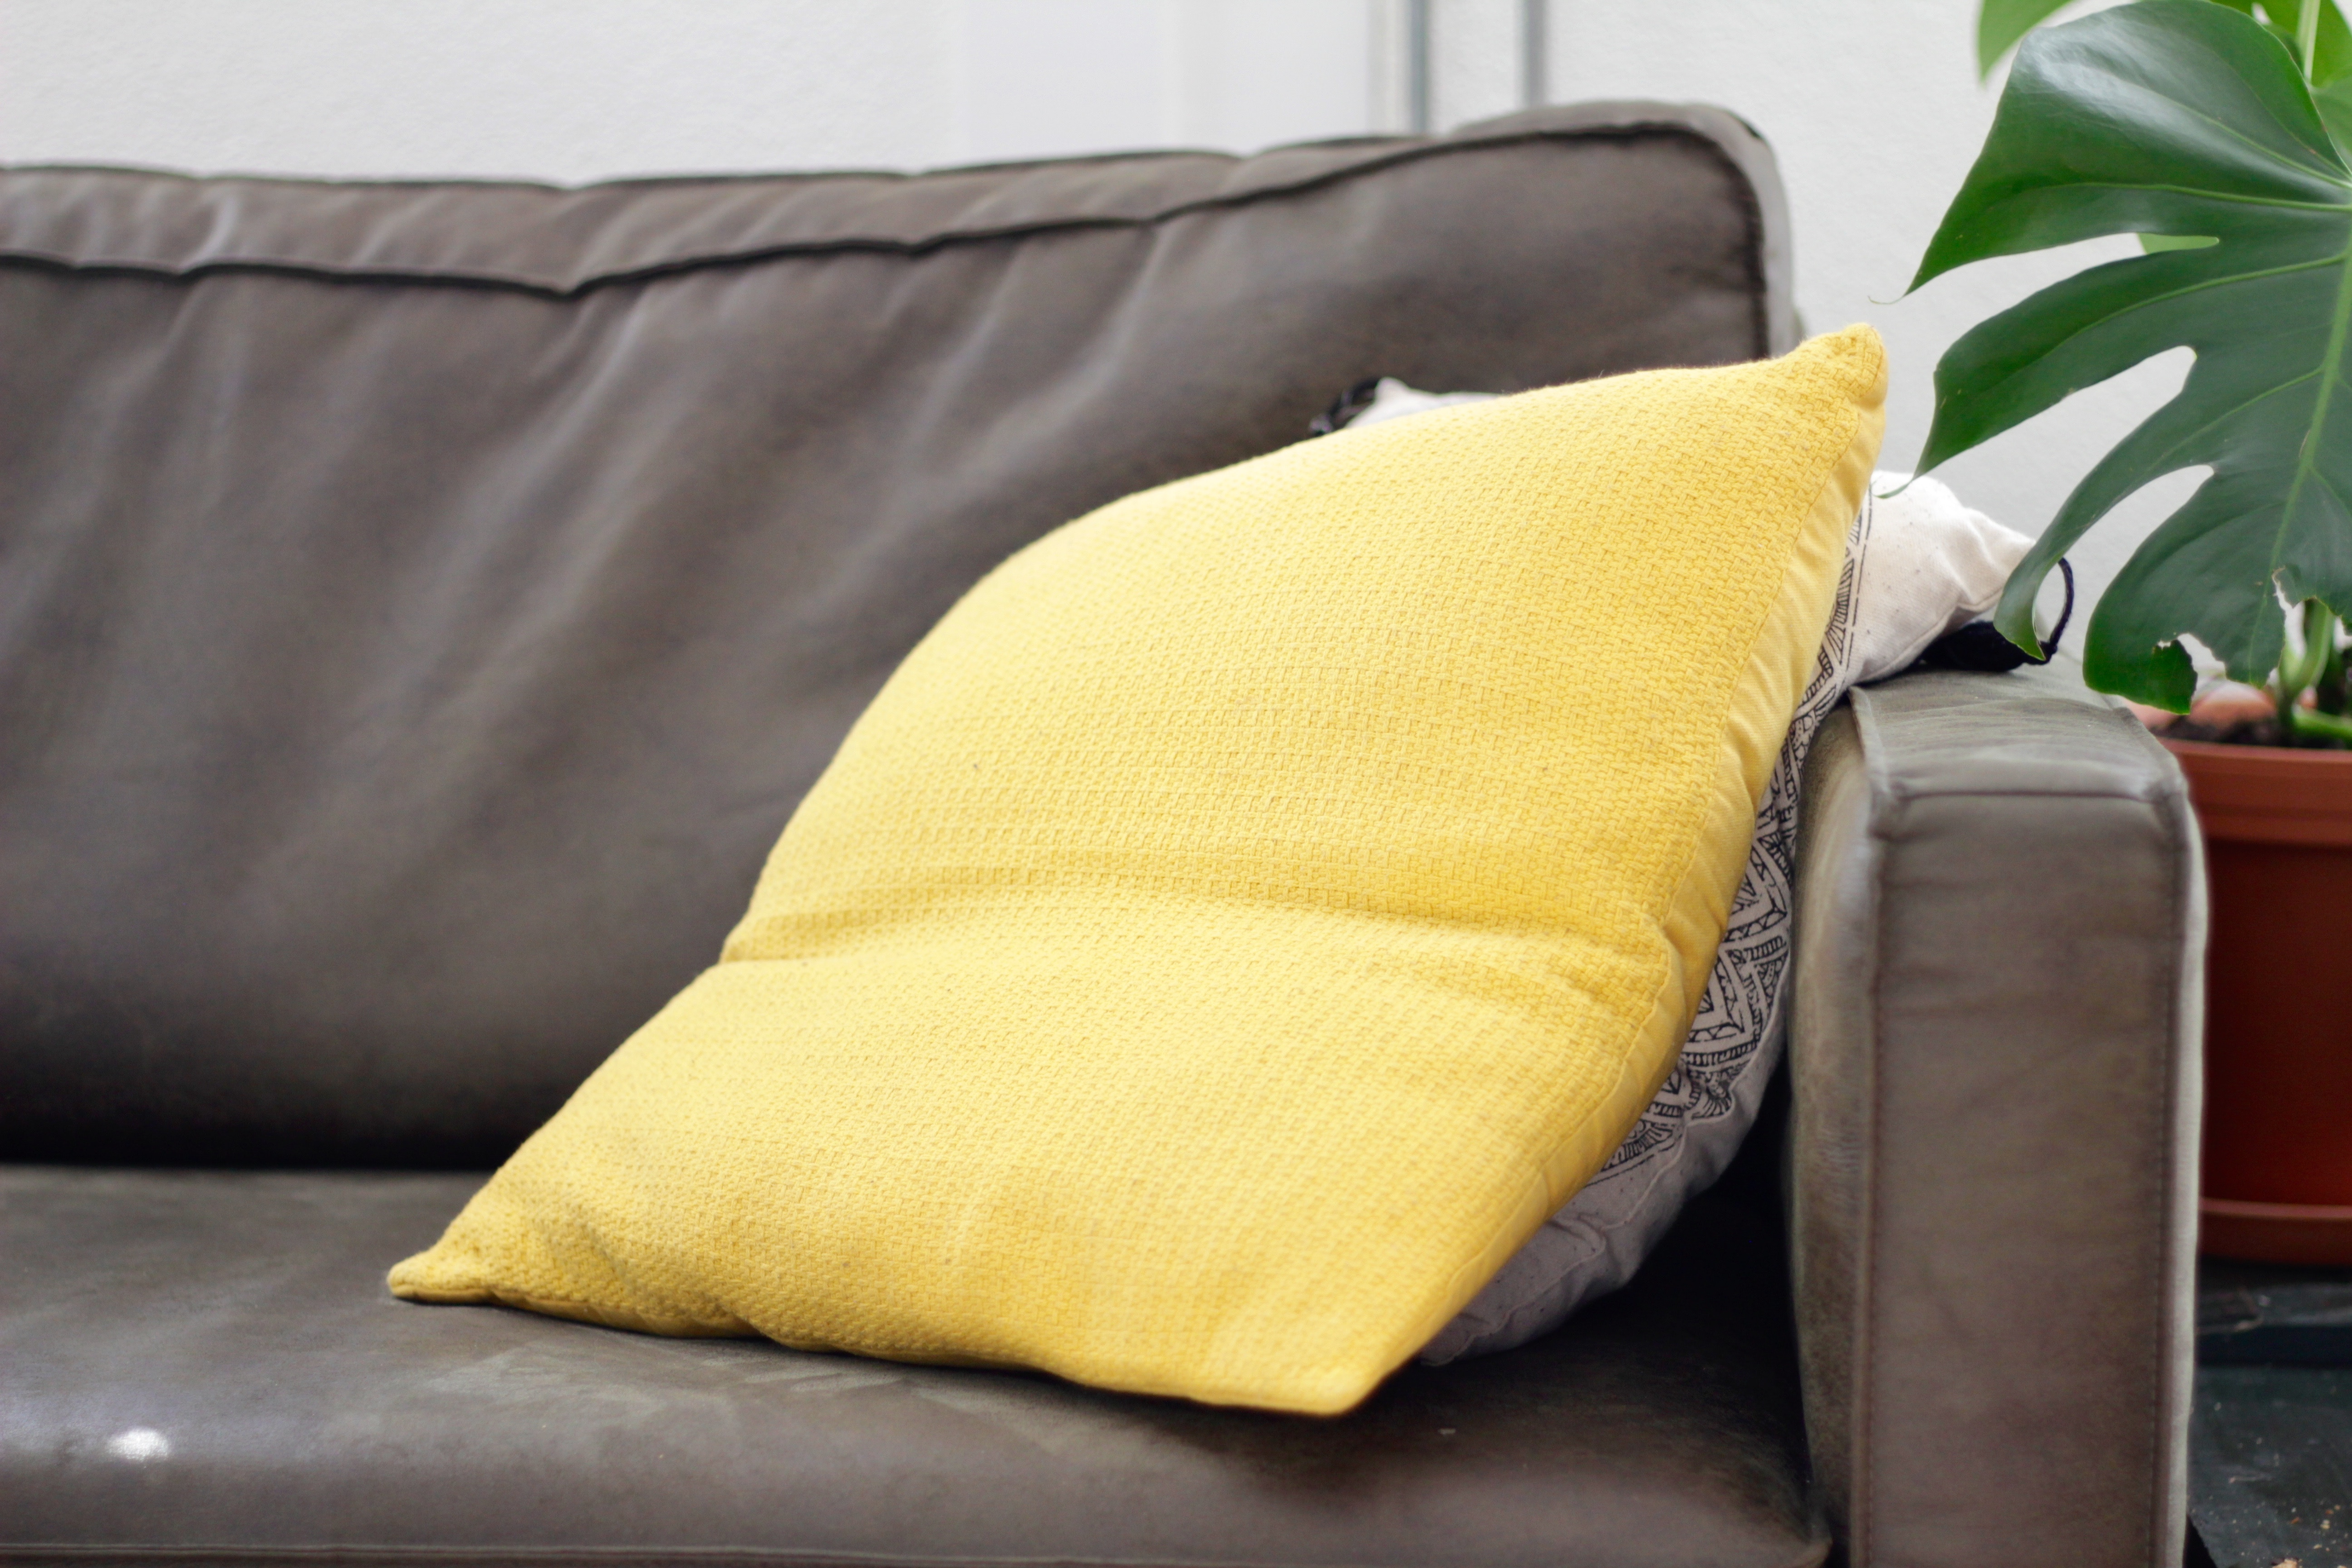 Yellow cushion on couch